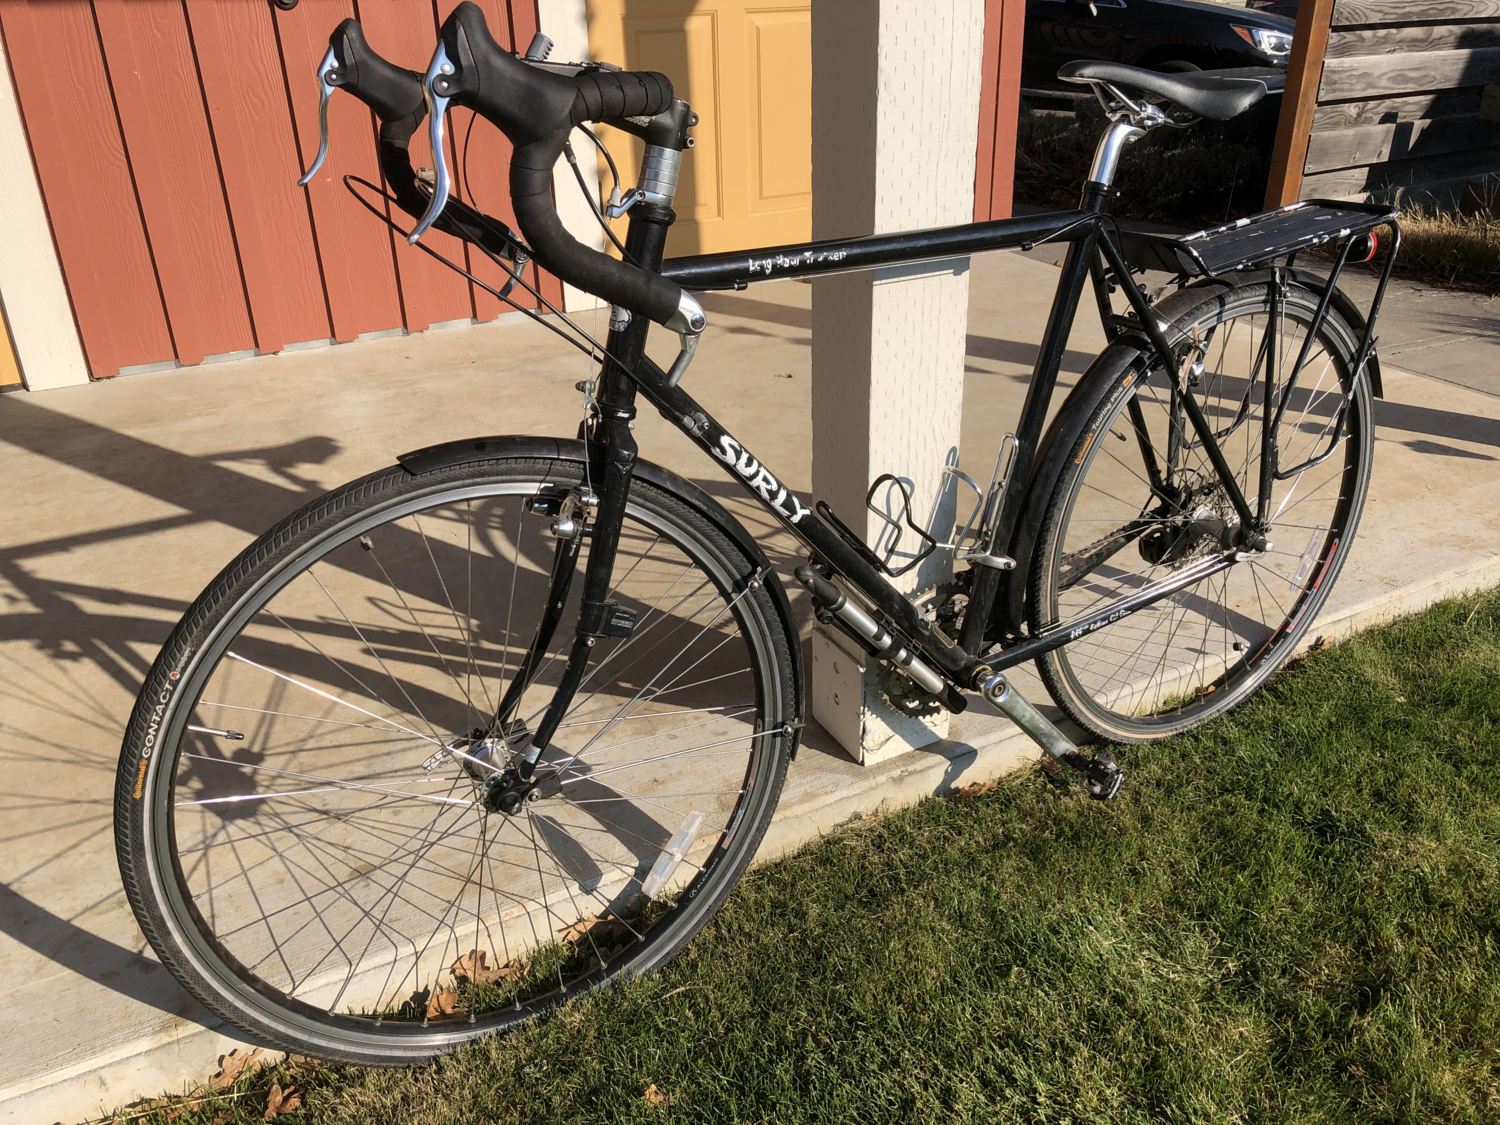 The Surly Long Haul Trucker touring bike, shown here in black.